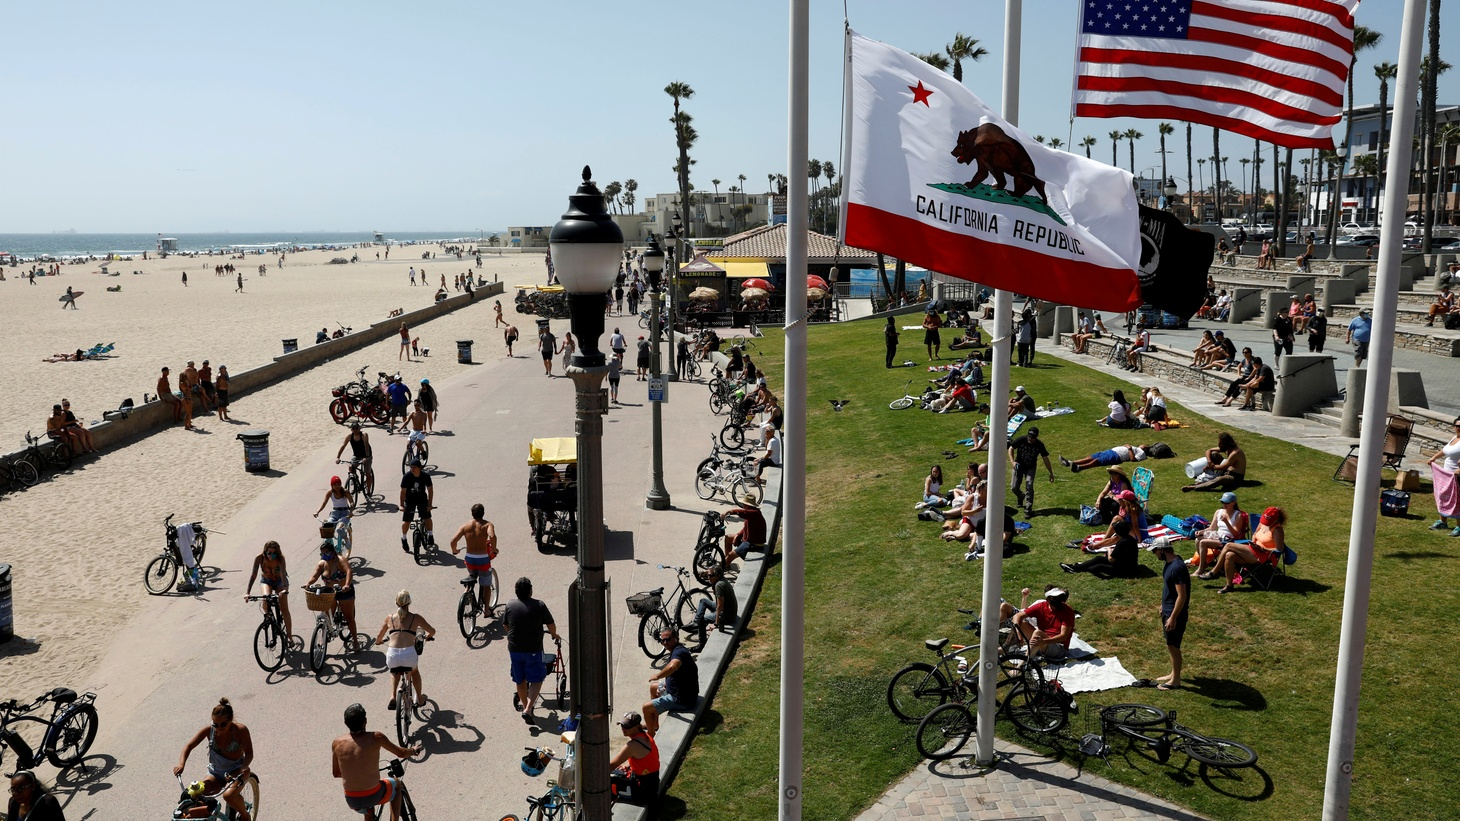 People spend Memorial Day weekend at the beach during the coronavirus disease pandemic in Huntington Beach, California, U.S., May 23, 2020.